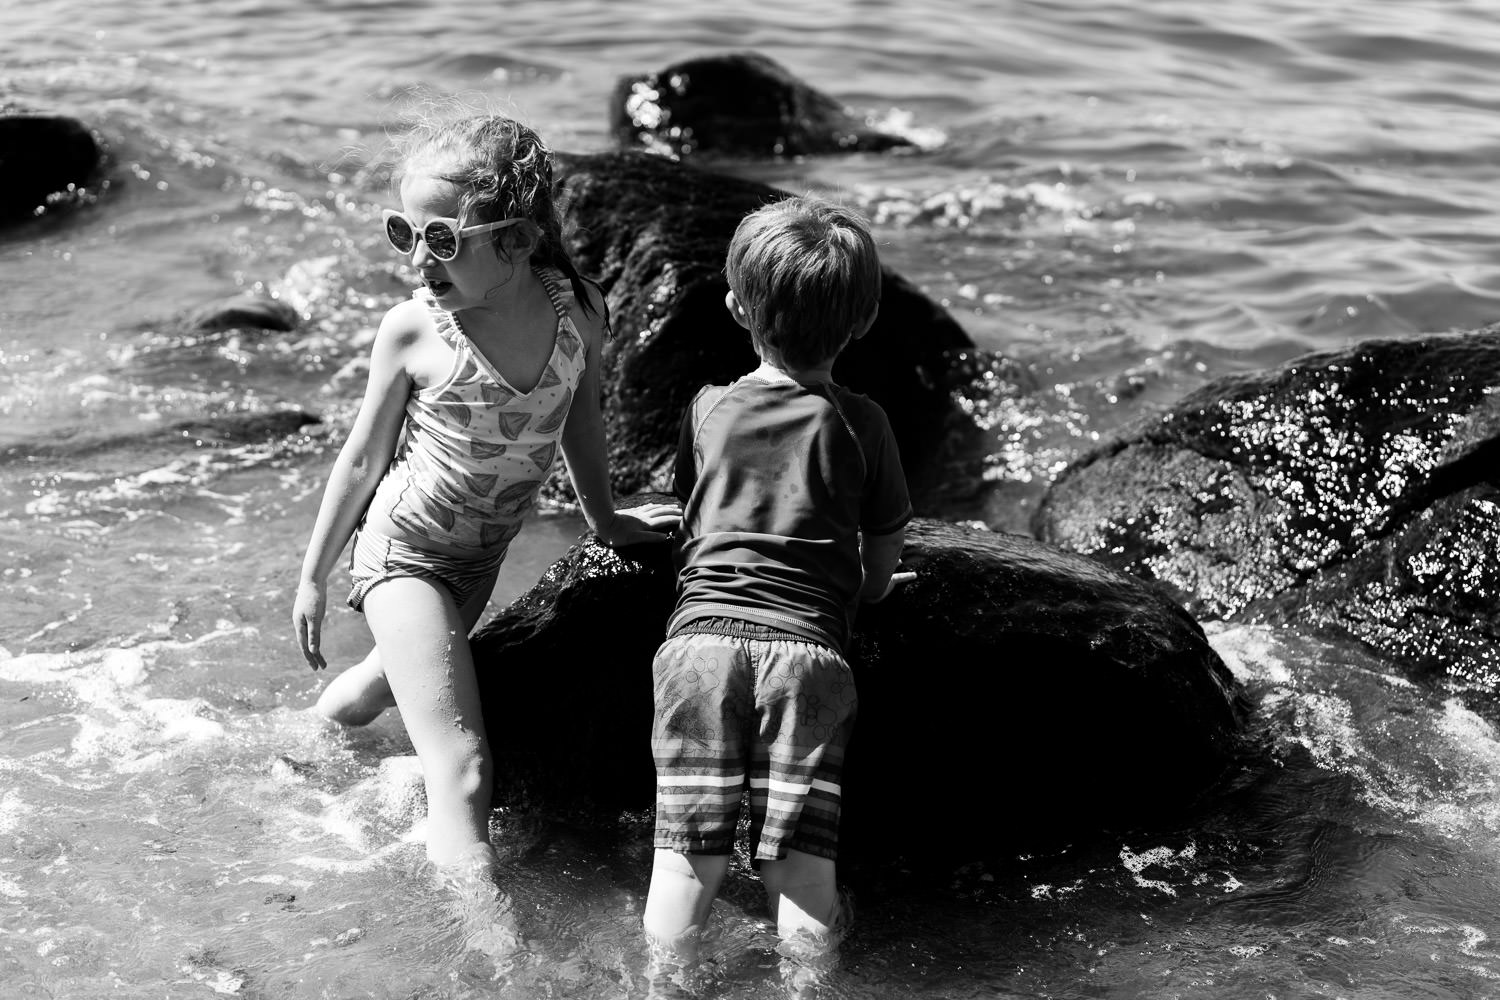 A boy and girl play in the water at Sands Point.